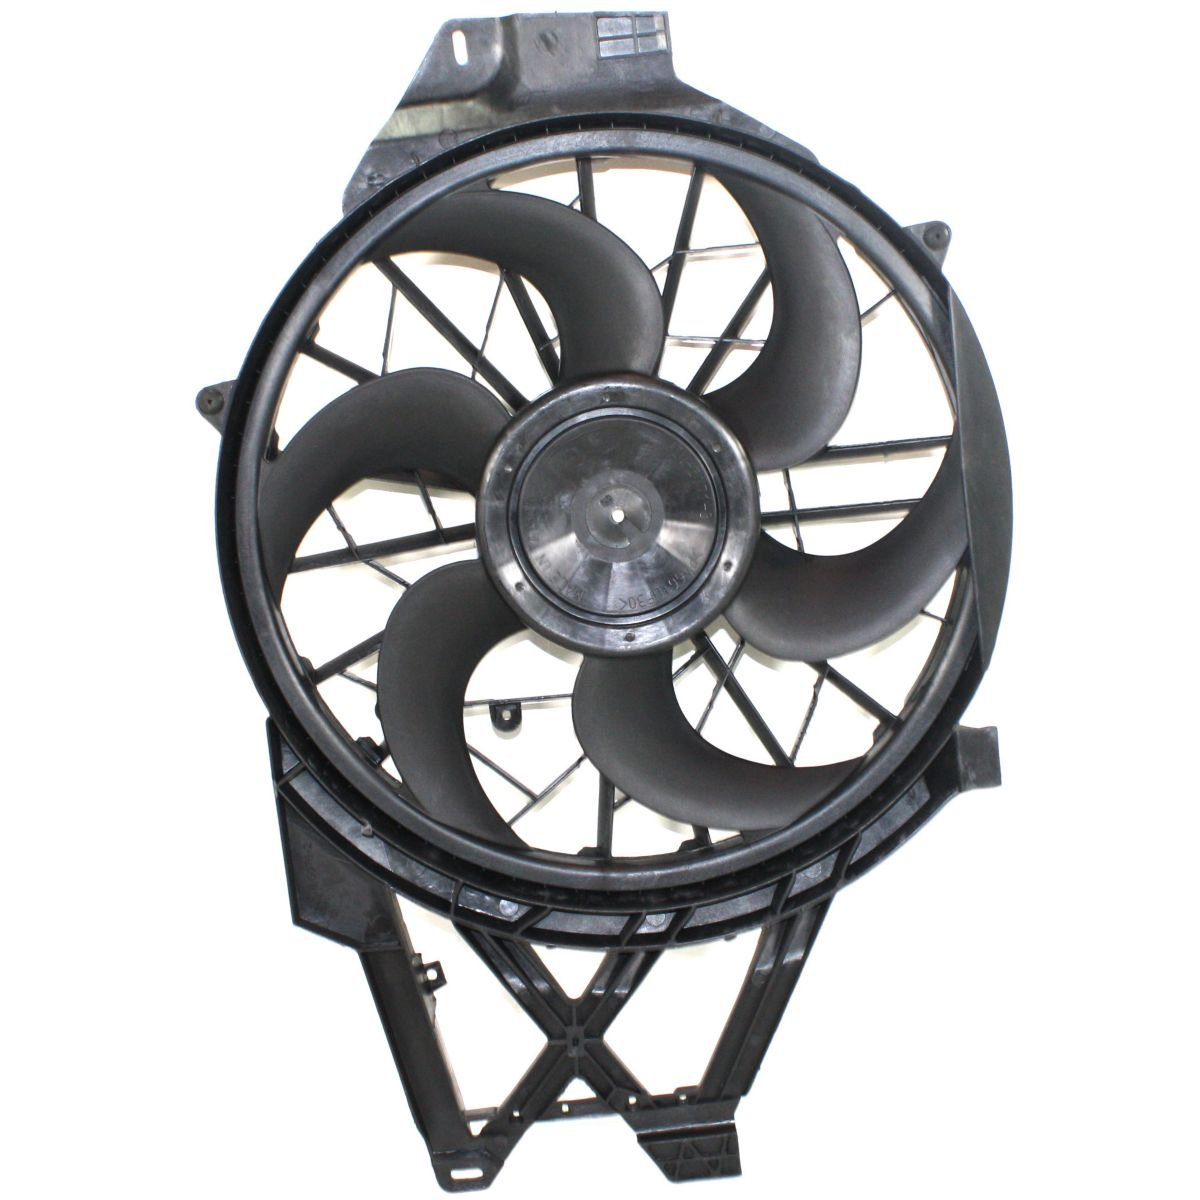 Make Auto Parts Manufacturing Premium Plastic Blade Engine Cooling Fan Assembly Without Shroud For 3.8L Eng Ford Mustang 1997-1998 - FO3115130